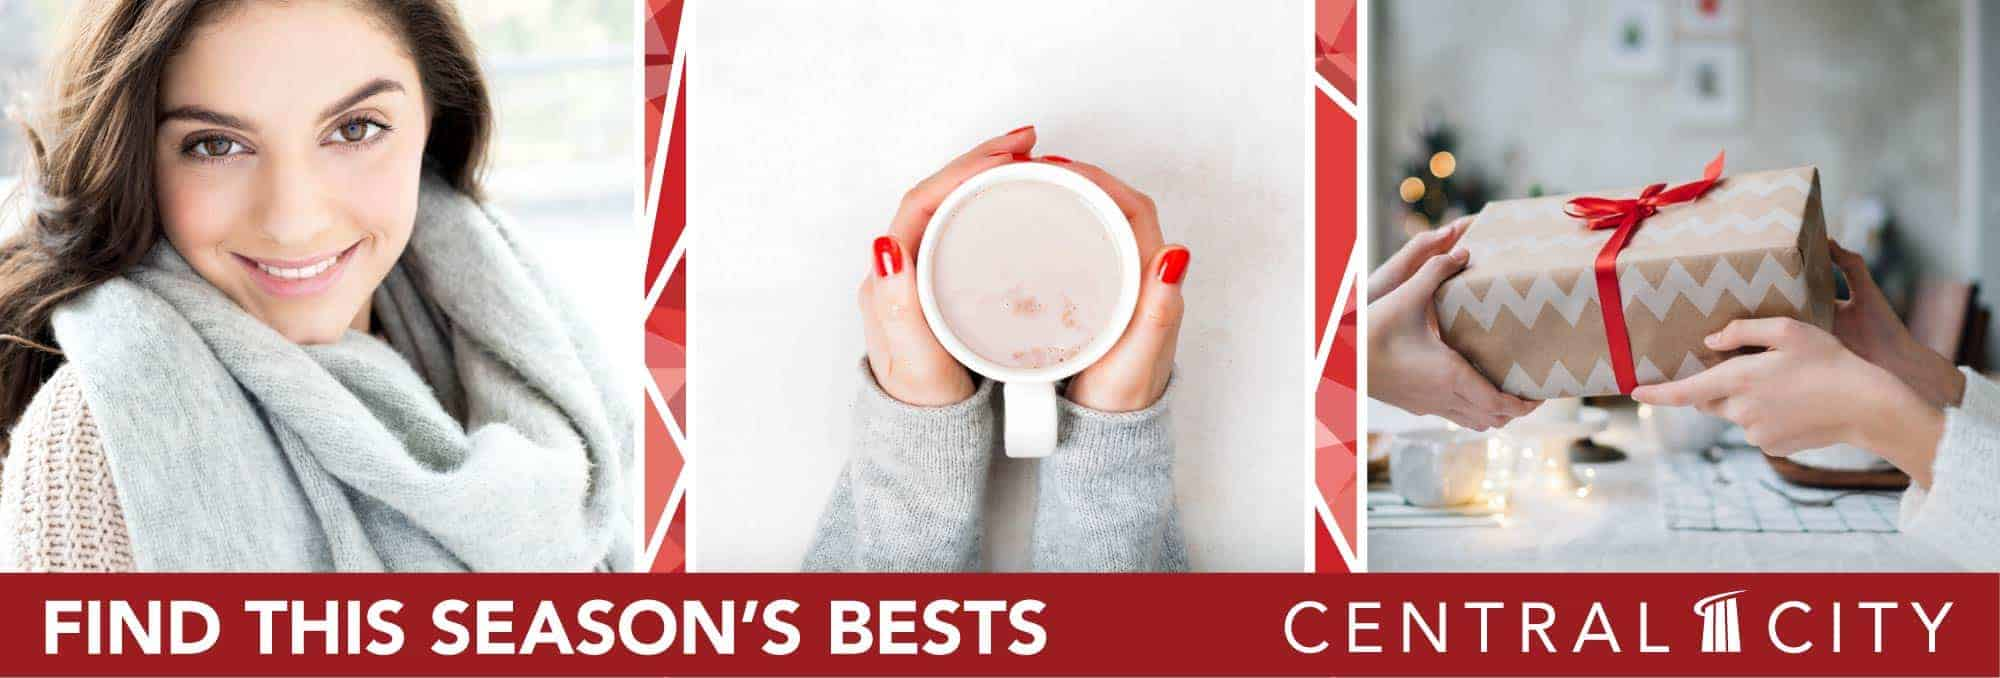 Find this Season's Bests at Central City Shopping Centre in Surrey, BC